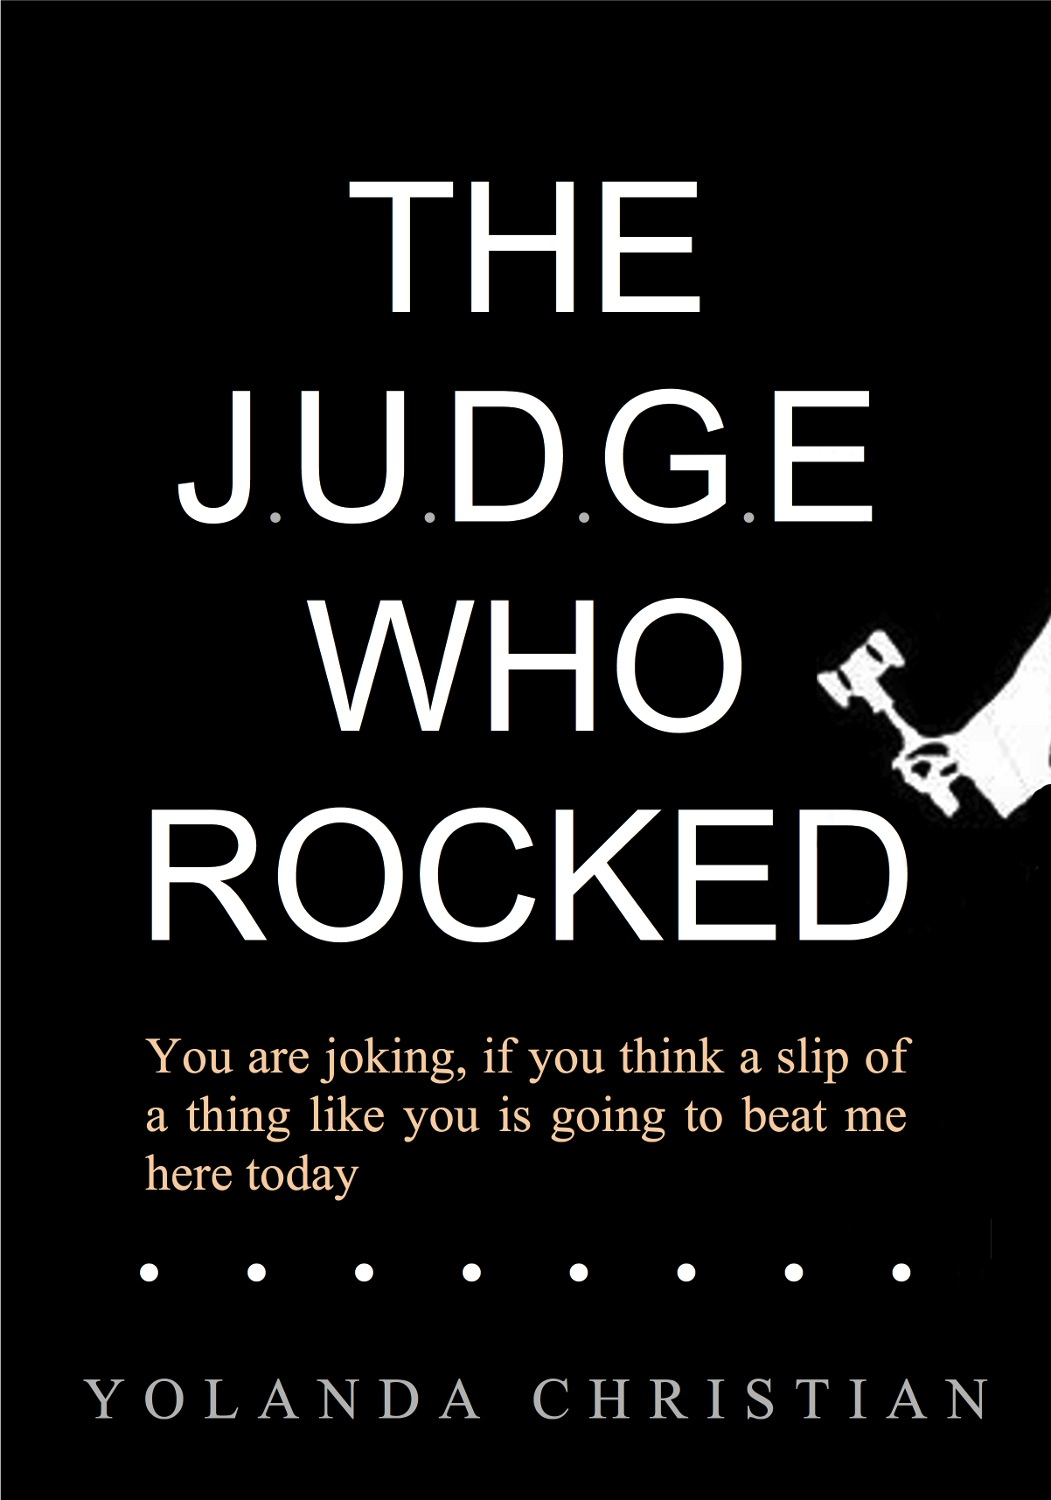 The Judge Who Rocked